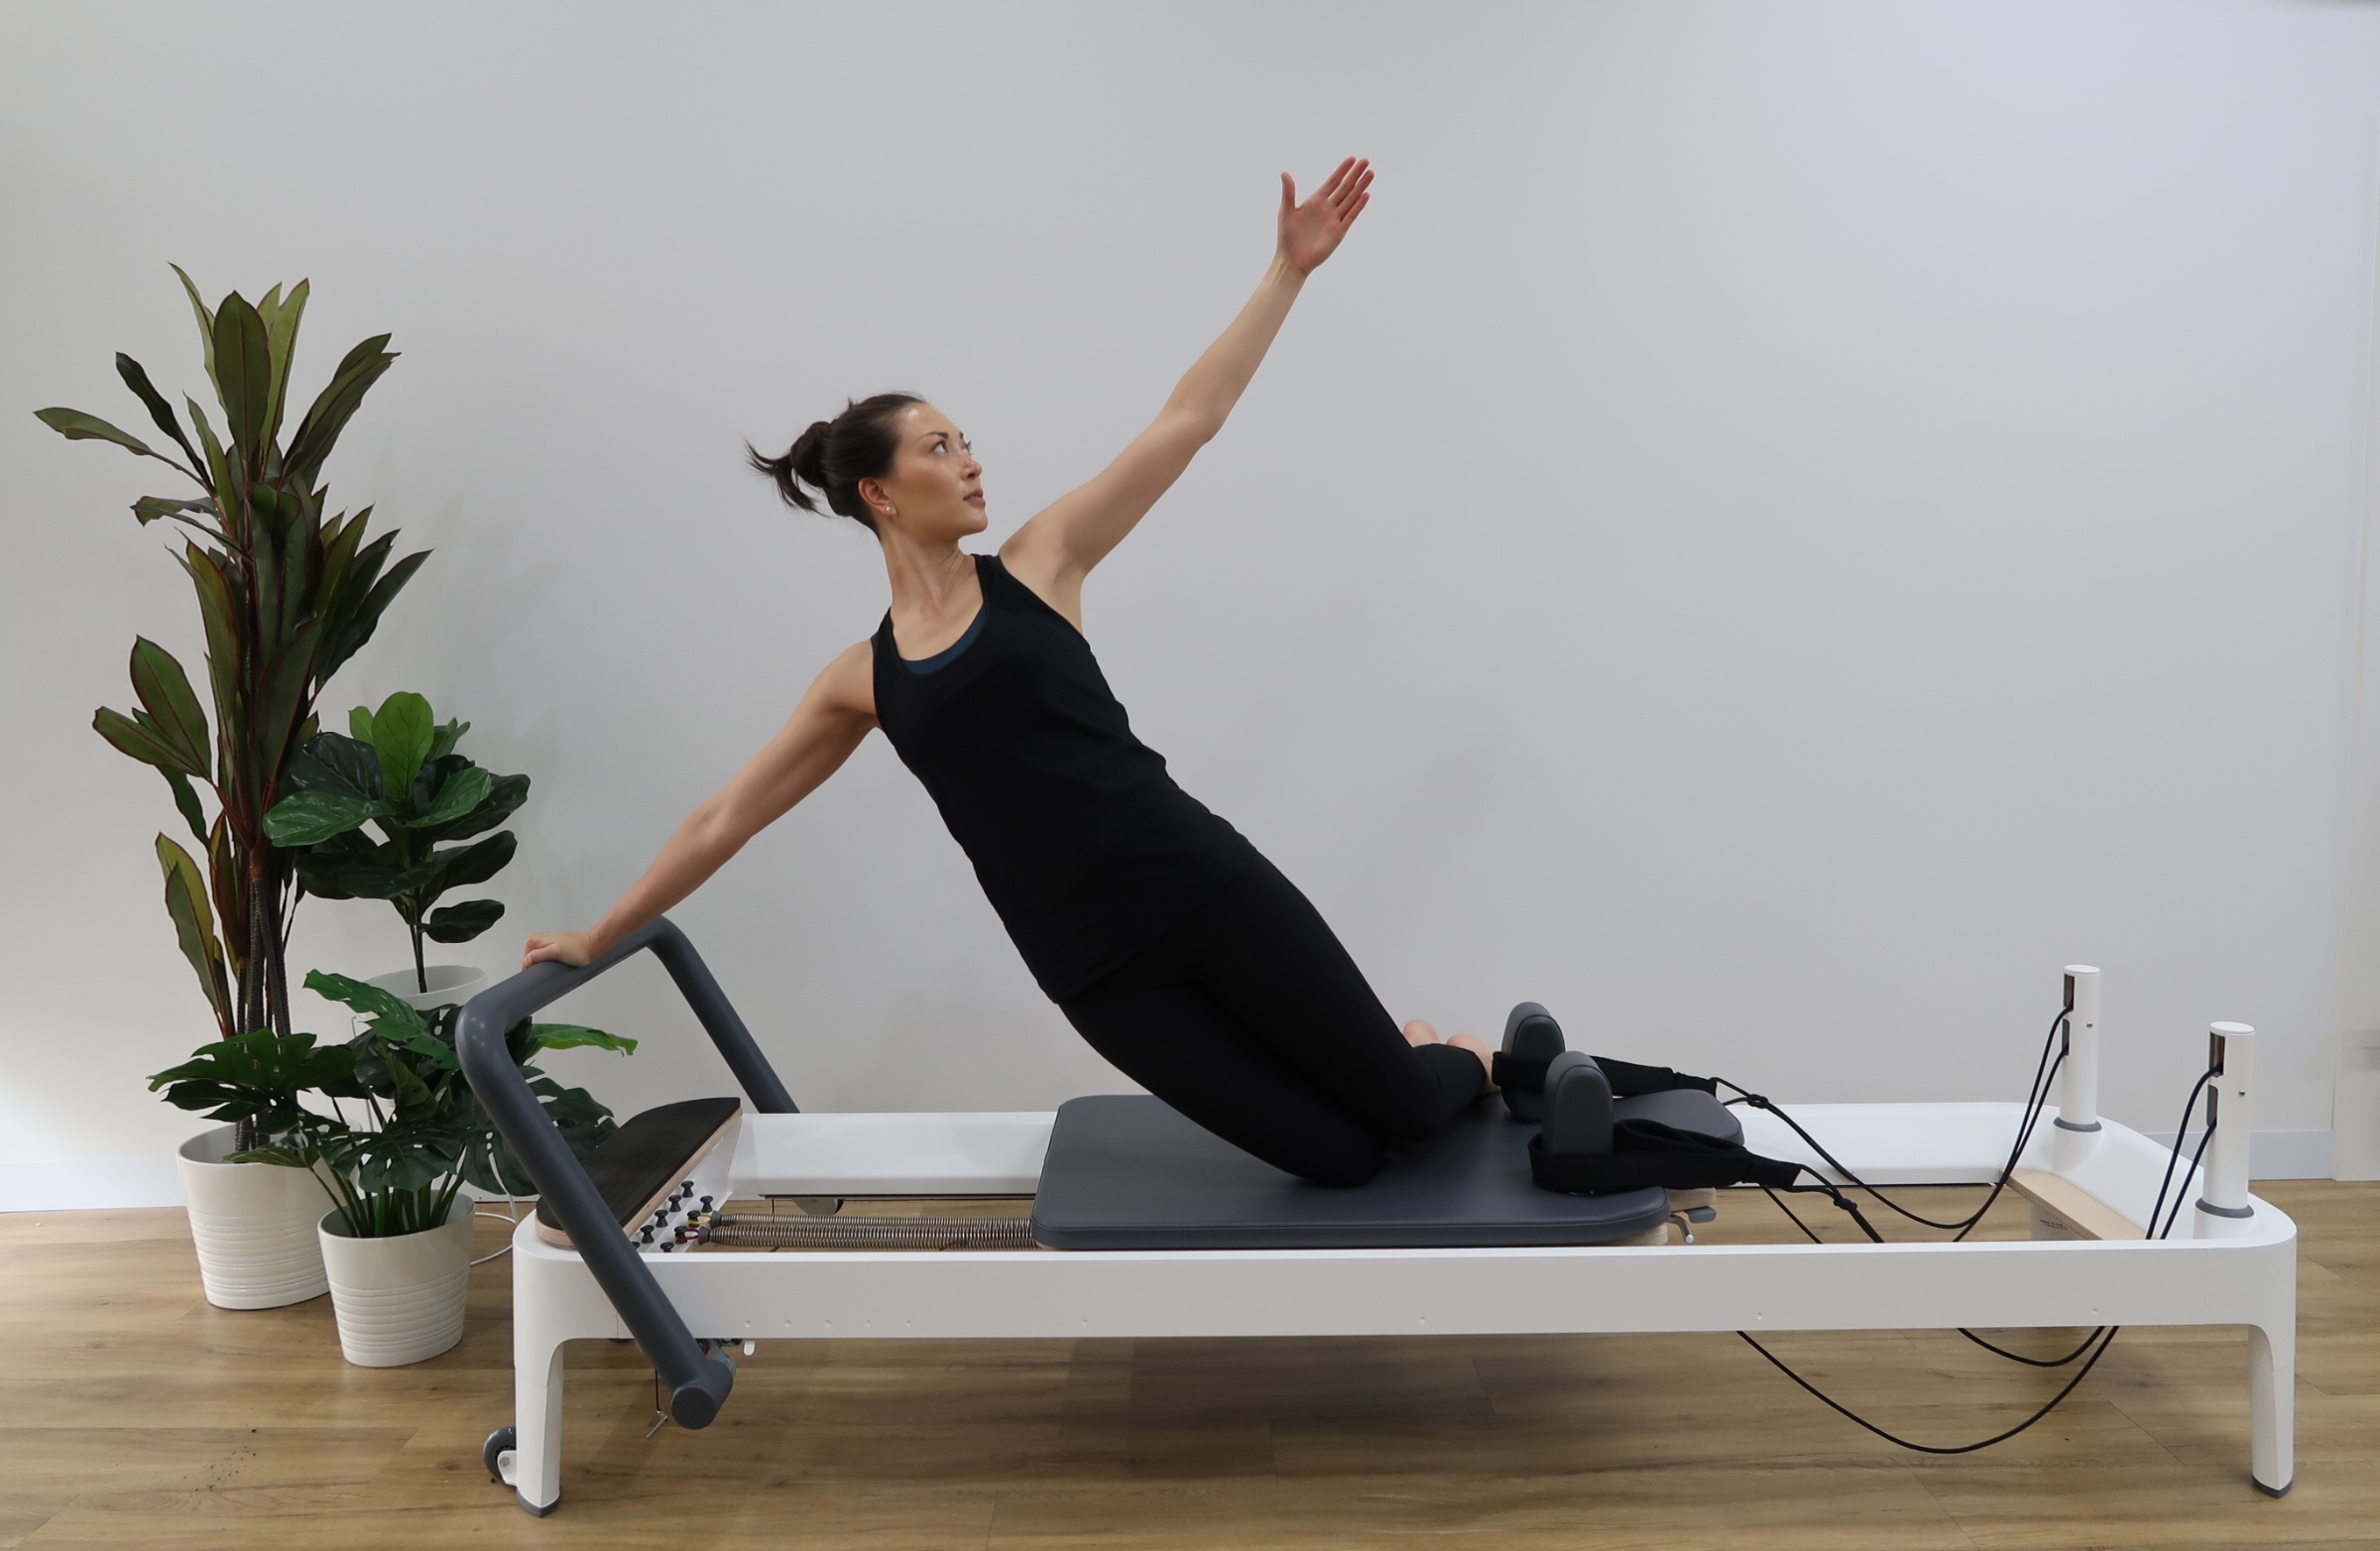 Person using equipment in Keilor Road Physio's clinical exercise & pilates studio